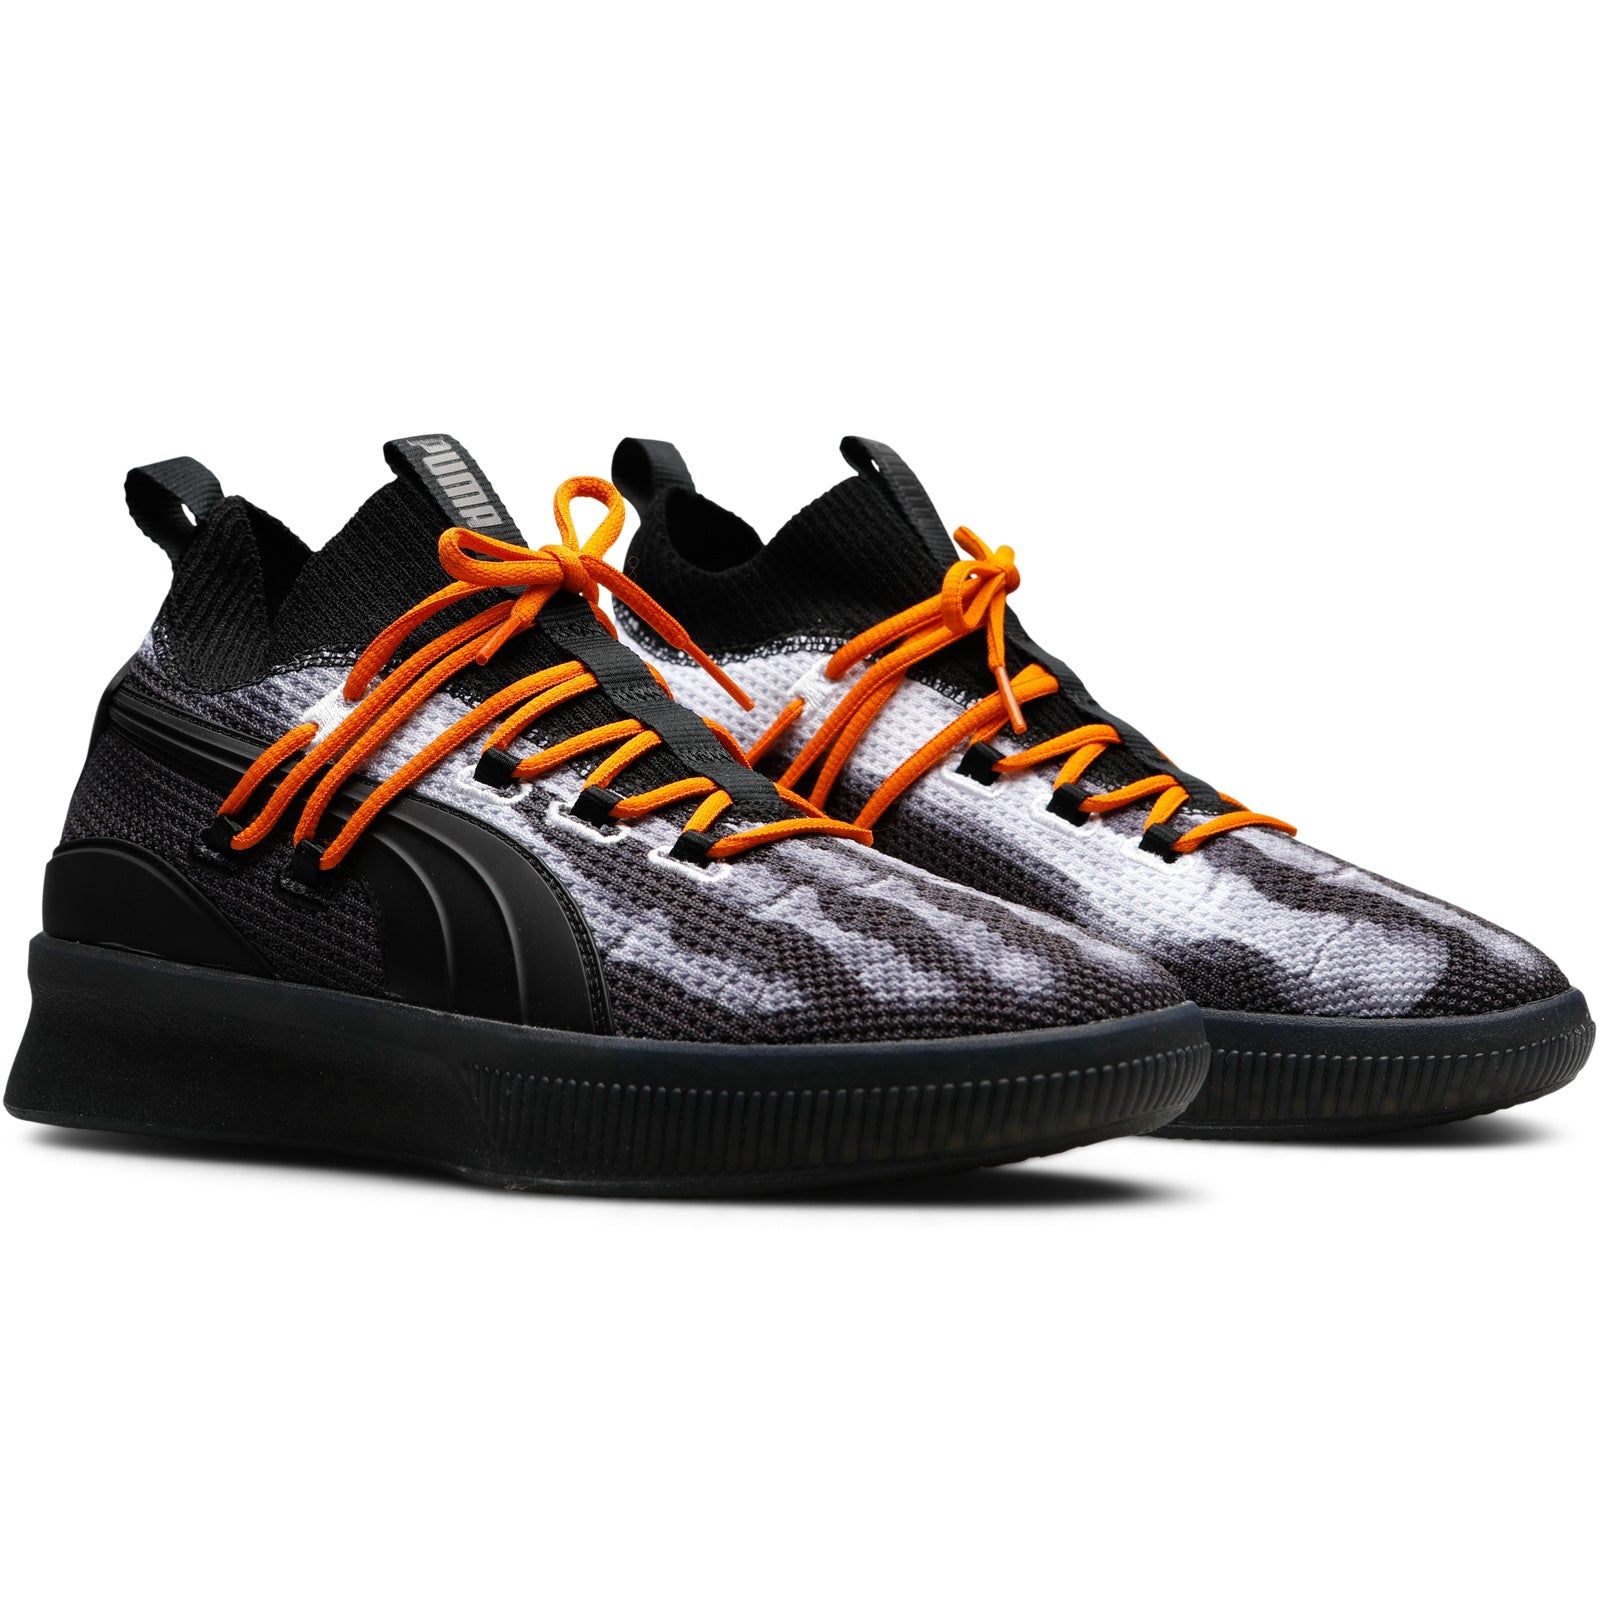 70aa6ab360a Also utilized in the design of the new Puma Clyde Court HW X-Ray is a  hybrid of Puma NRGY and IGNITE technology to ensure maximum cushioning and  support.